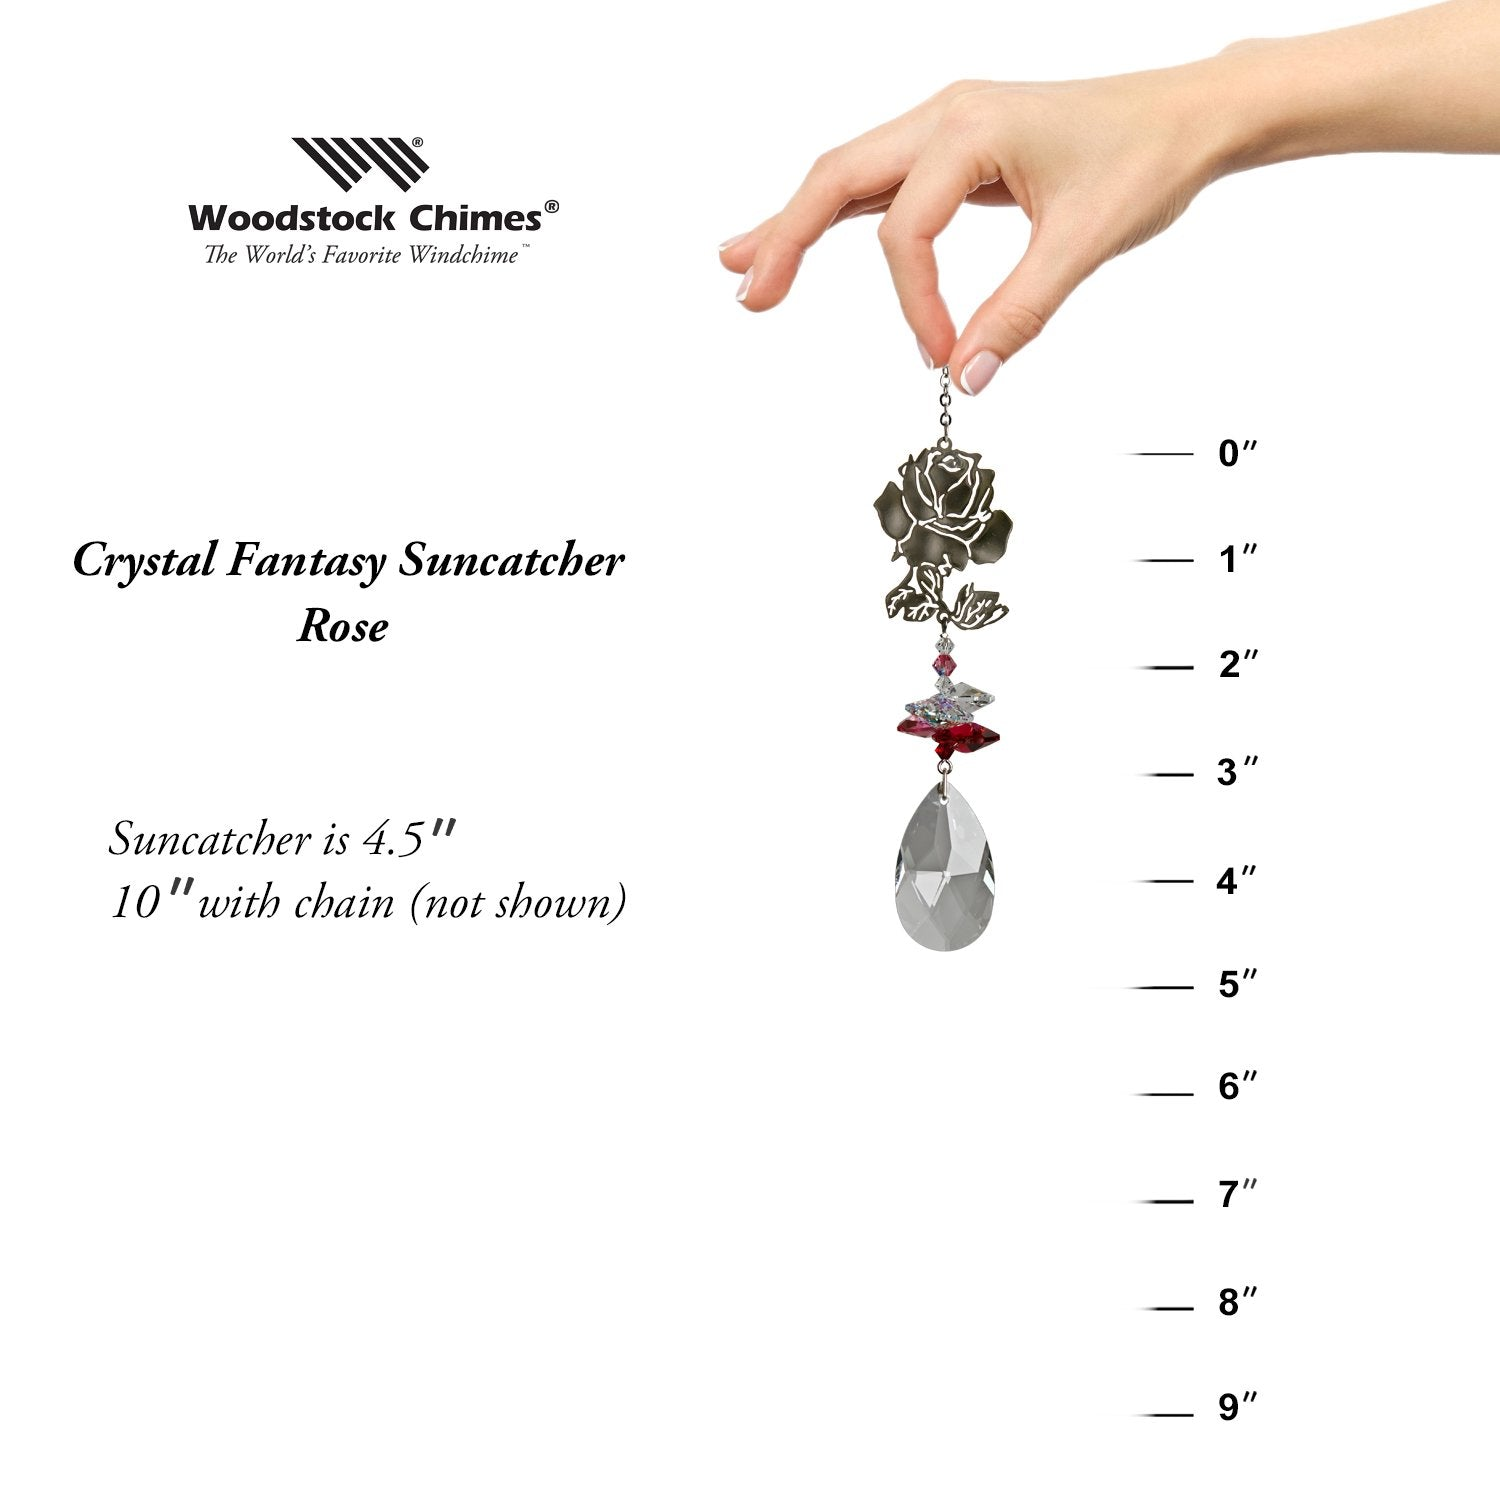 Crystal Fantasy Suncatcher - Rose proportion image